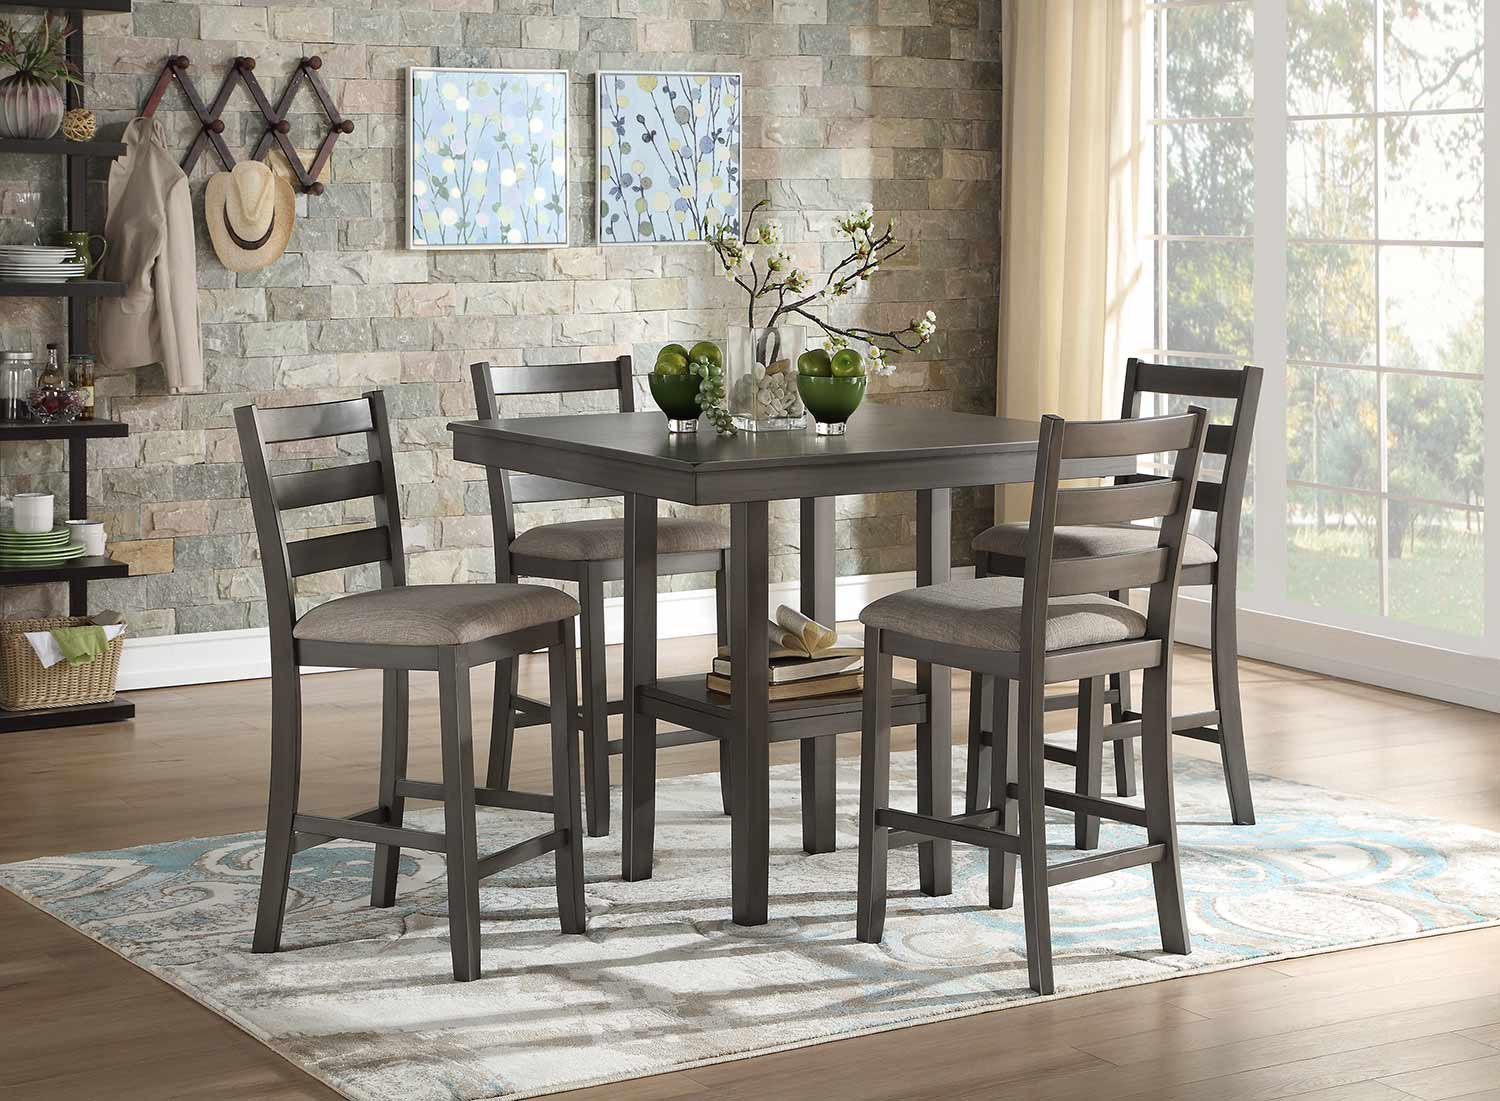 Homelegance Sharon 5-Piece Pack Counter Dining Set